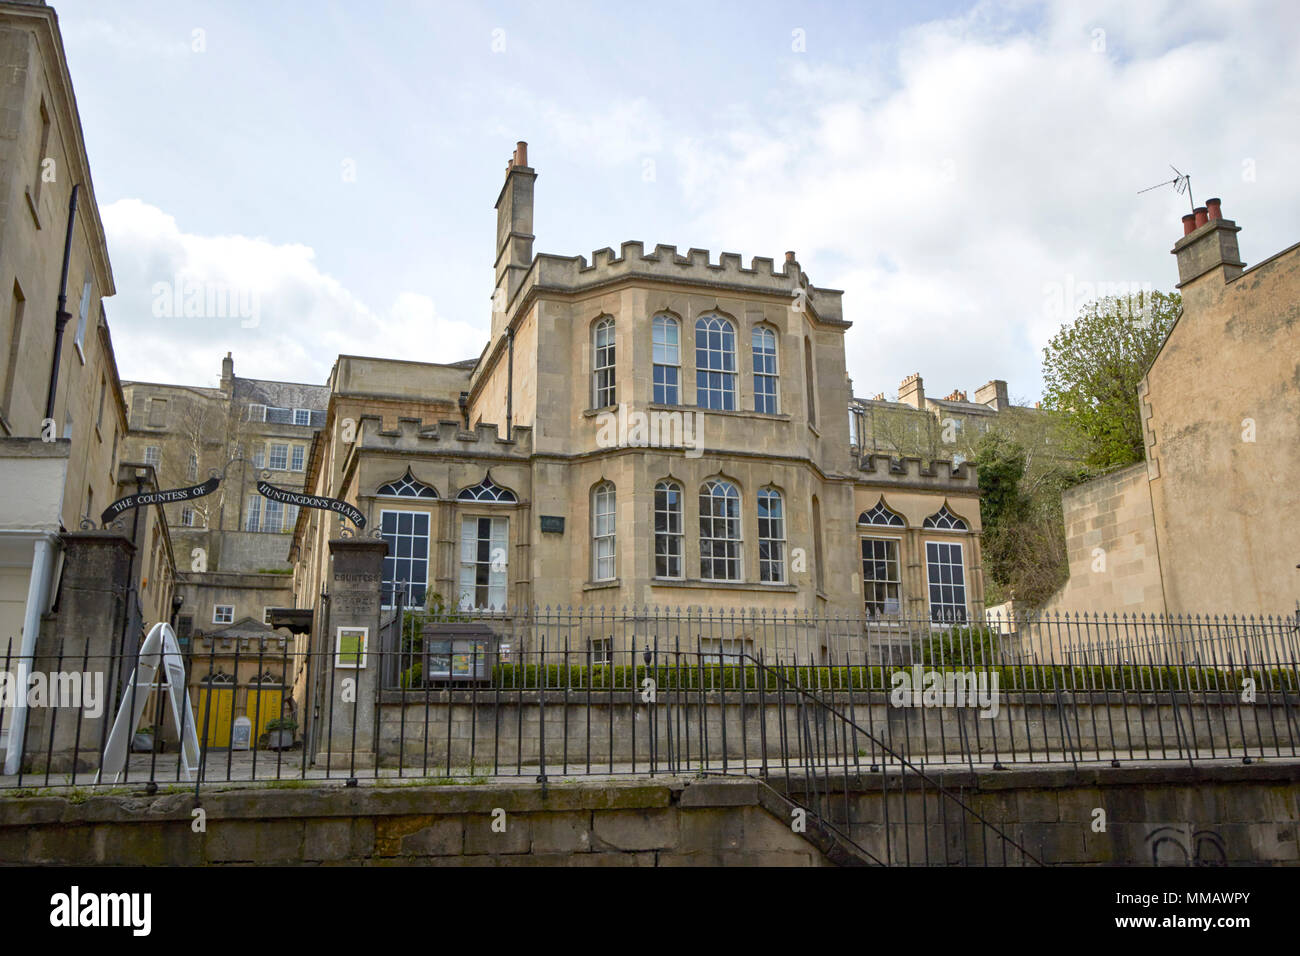 Trinity Presbyterian Church building of bath collection formerly building of bath museum the vineyards Bath England UK. Also known as the Countess of  - Stock Image